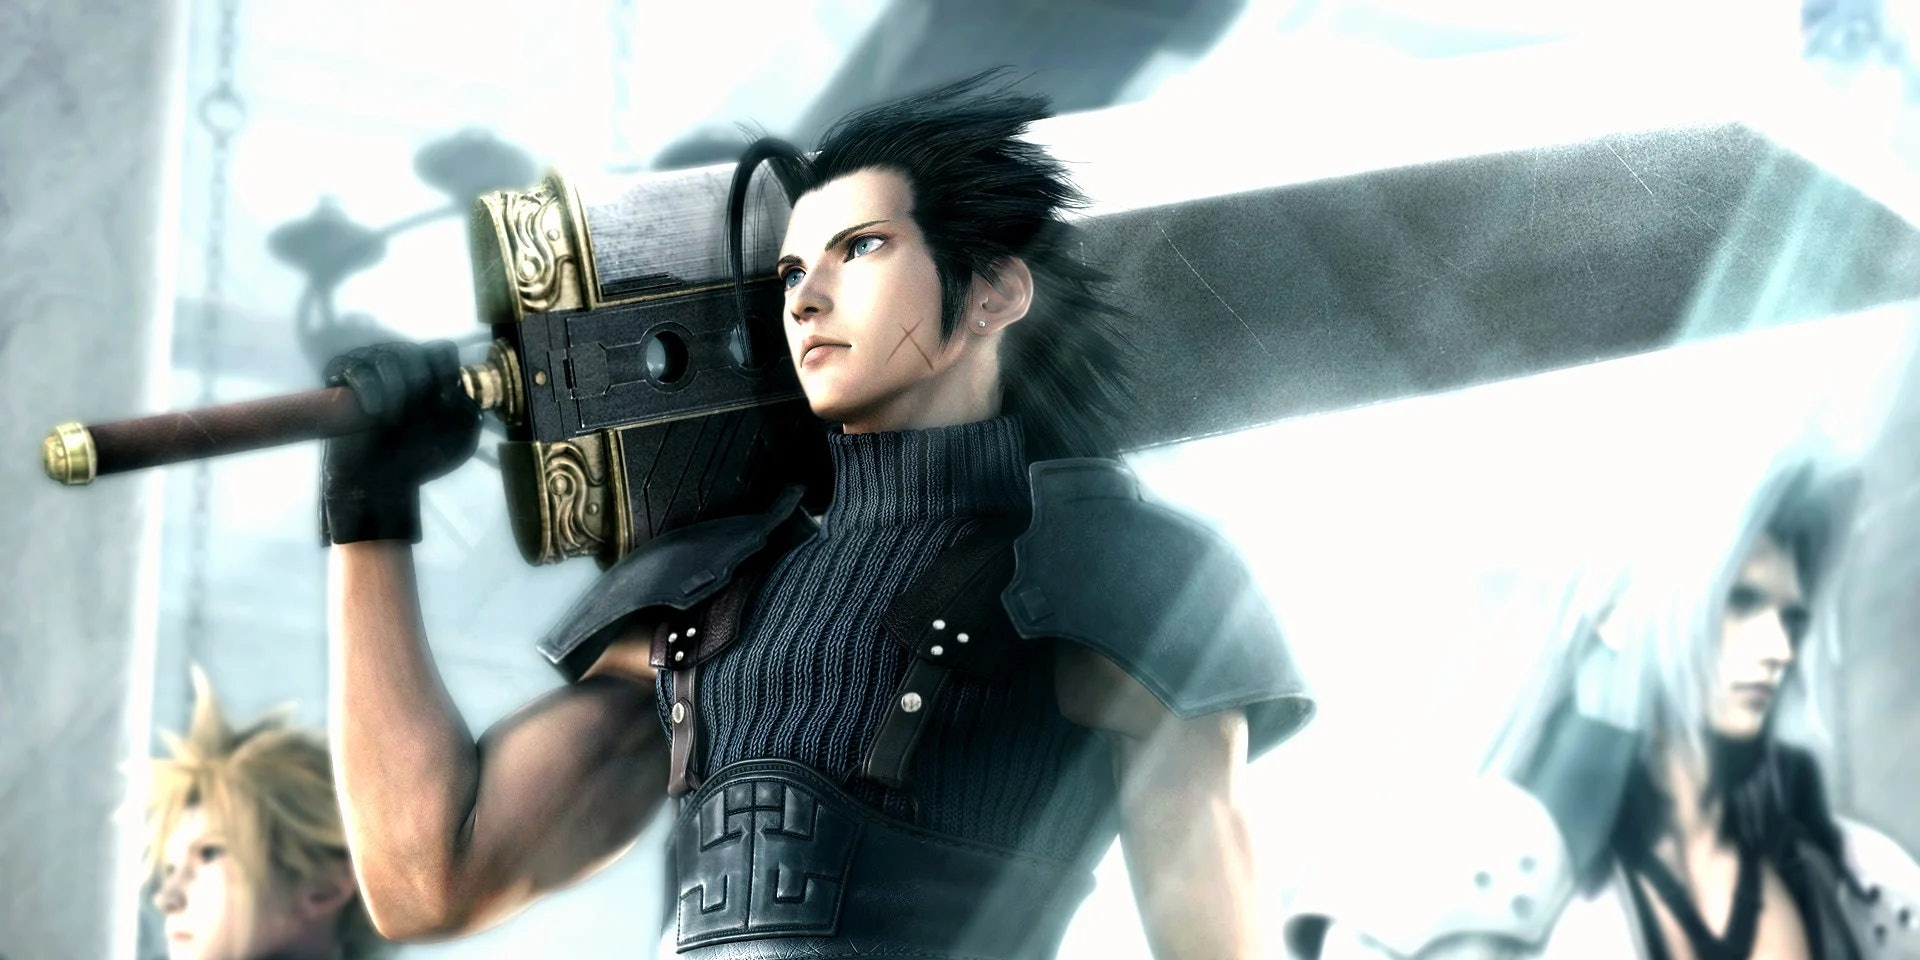 Ff7 Remake Spoilers Will Zack Fair And Crisis Core Story